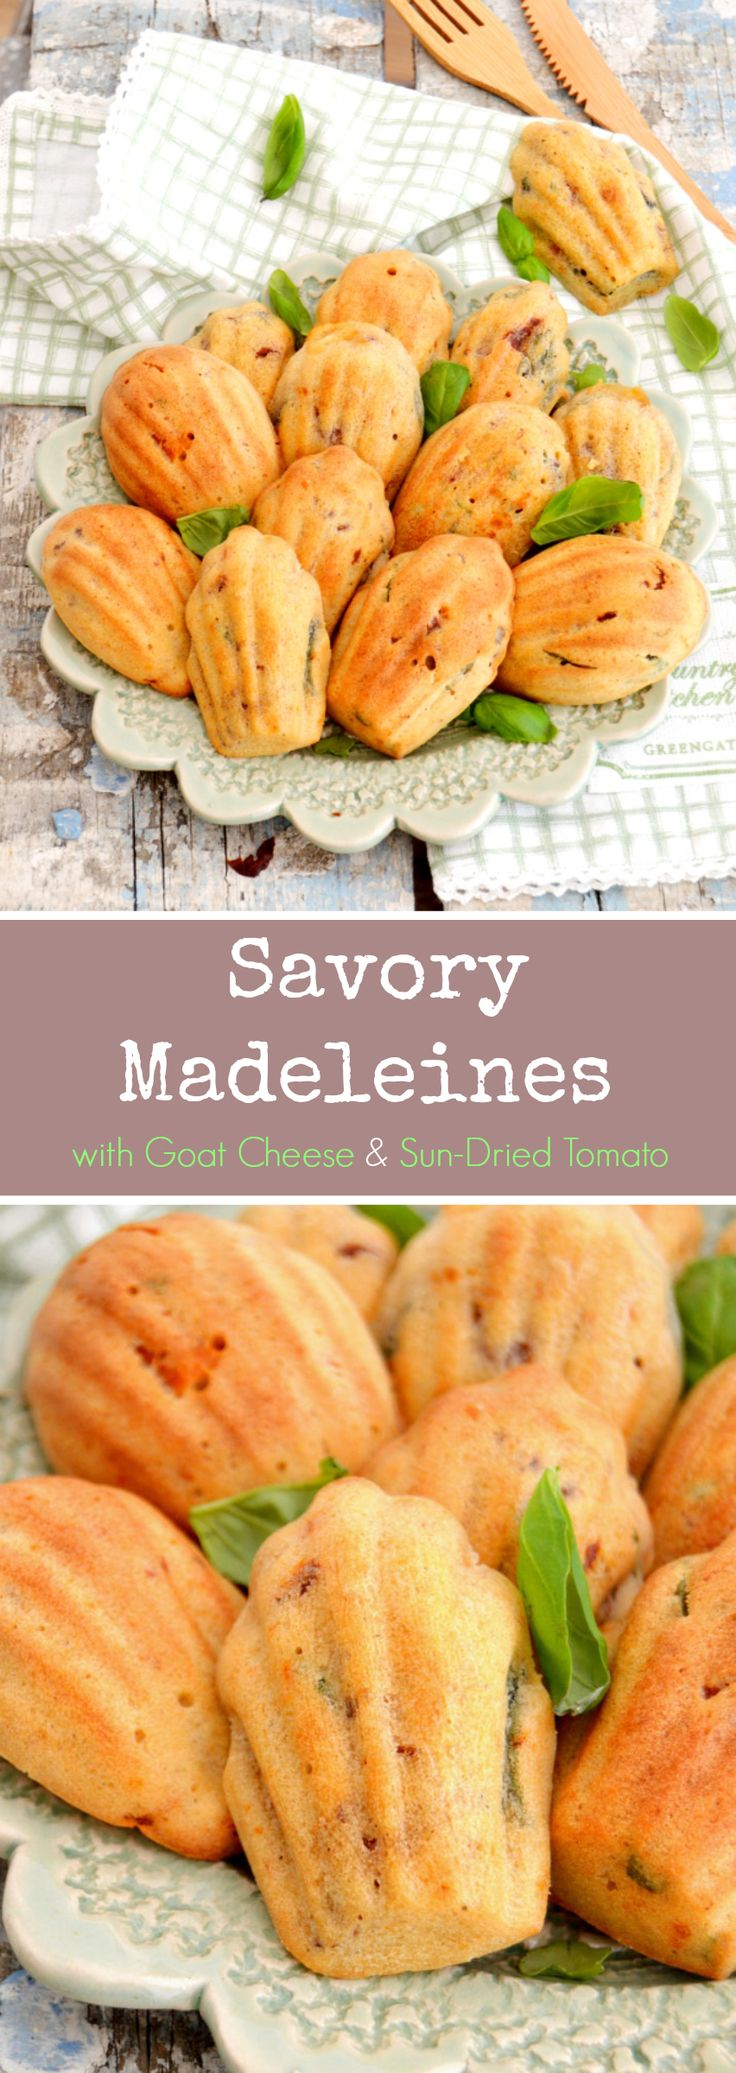 Goat cheese and sun dried tomato madeleines - a delicious savory madeleine cookie that is perfect served as an appetizer or alongside a fresh garden salad! | Del's cooking twist